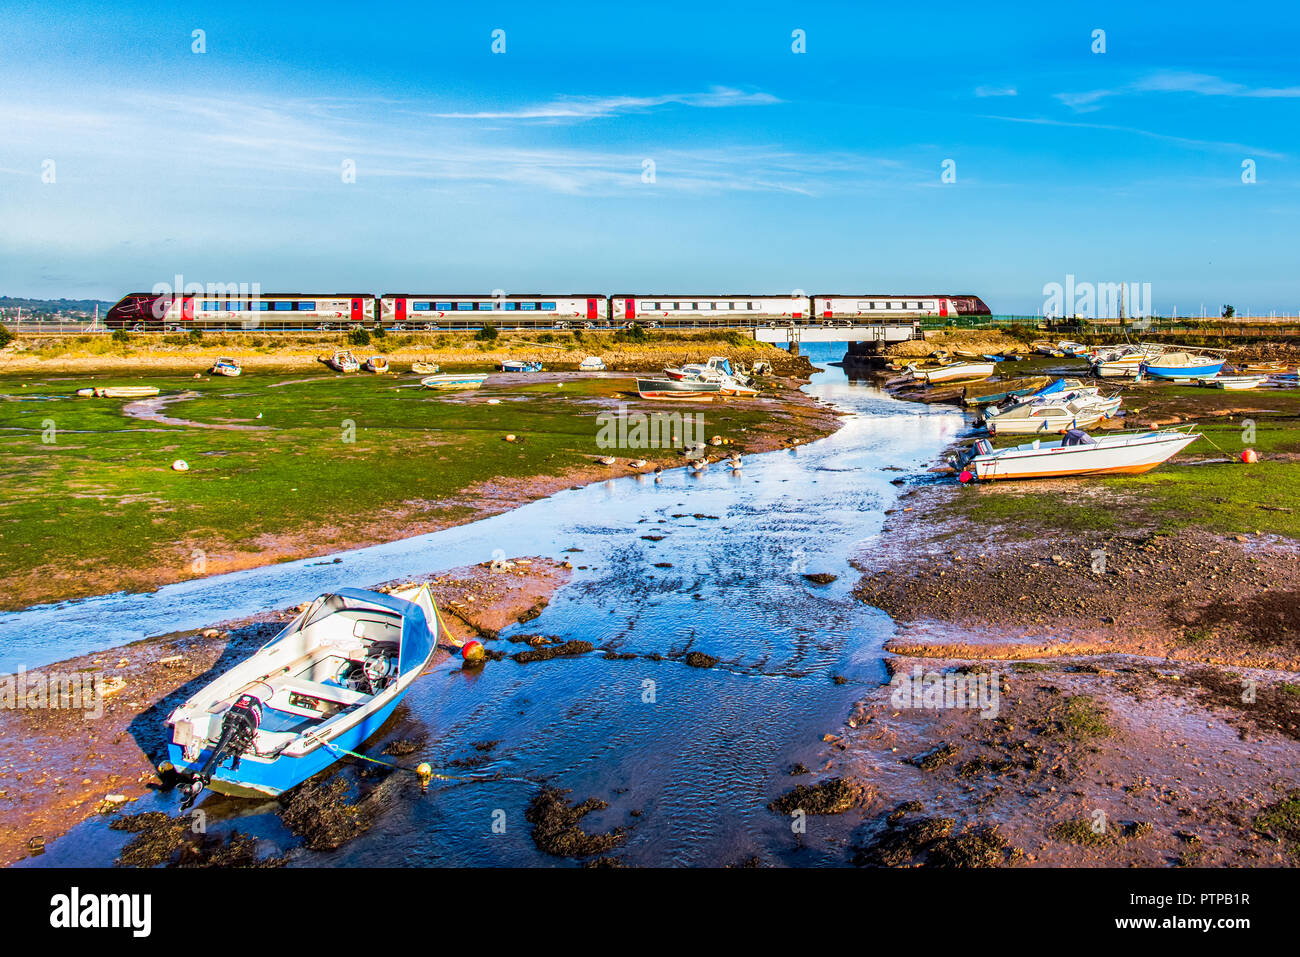 COCKWOOD, STARCROSS, DEVON, UK - CrossCountry class 220 Voyager trainset passes the harbour at Cockwood on the Exe Estuary. - Stock Image